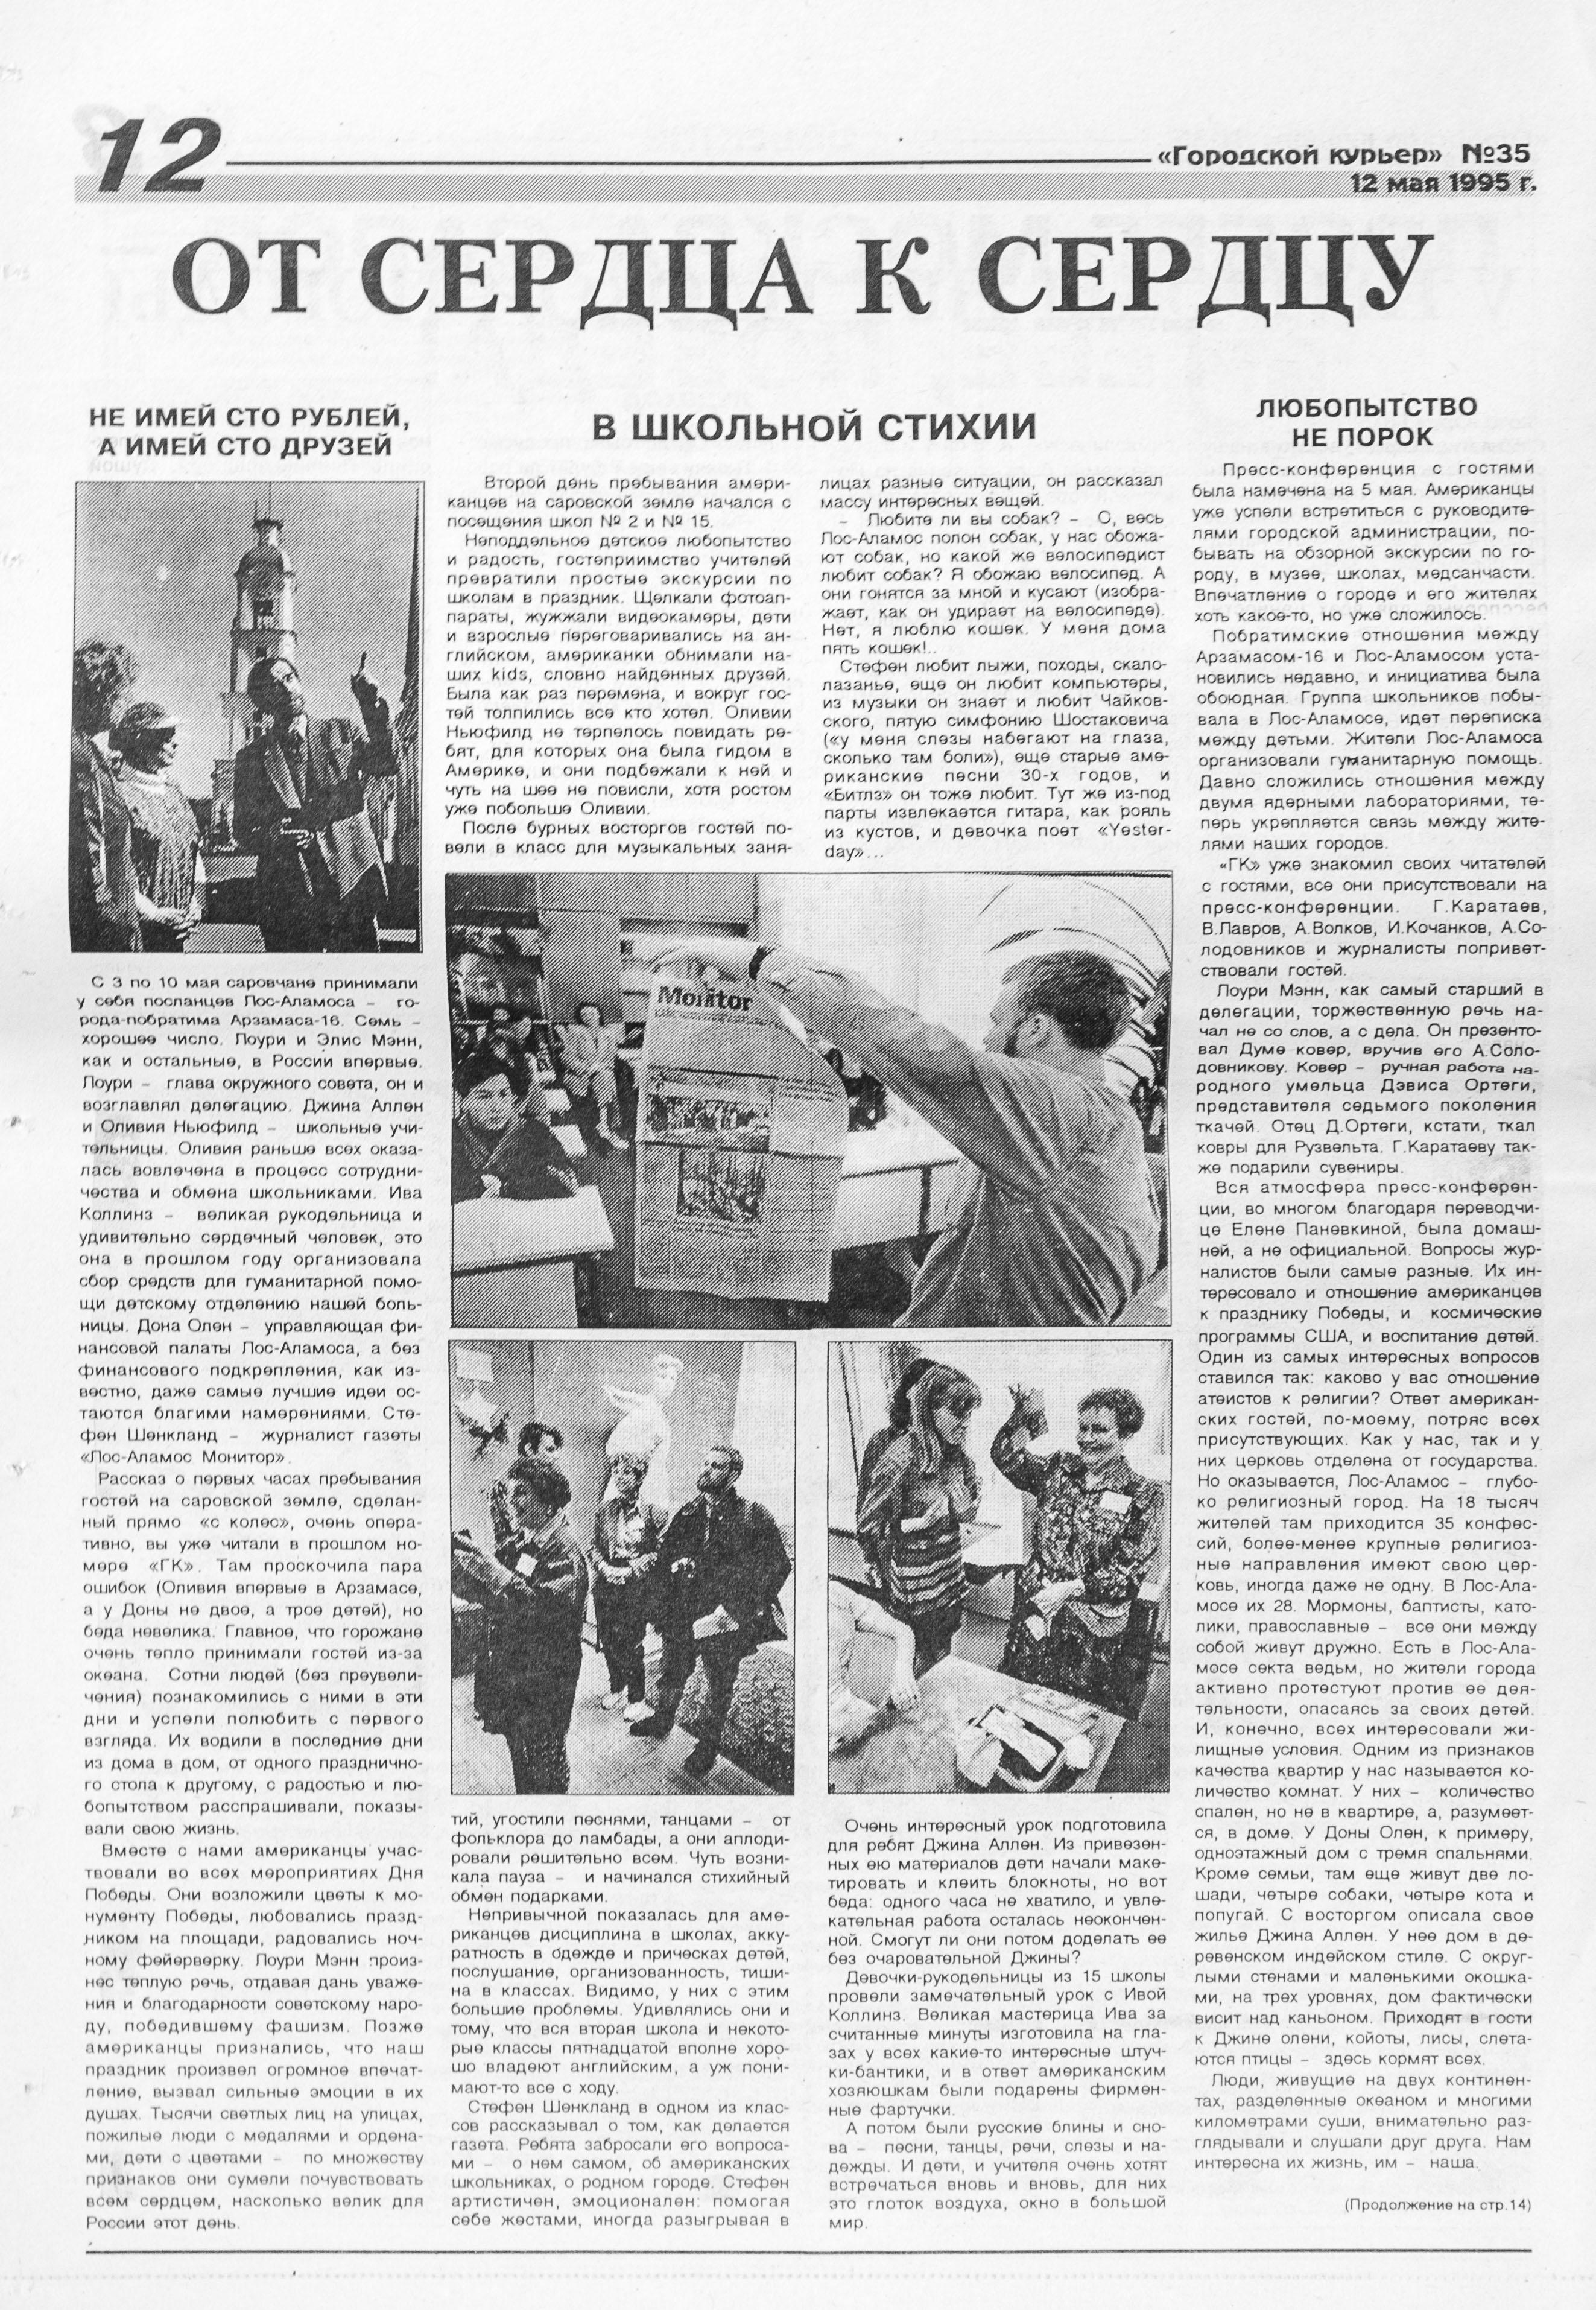 Sarov's City Courier newspaper from 1995 chronicles the visit of Stephen Shankland (center photo, holding newspaper) and others from Los Alamos, New Mexico, to the Russian nuclear weapons design city.